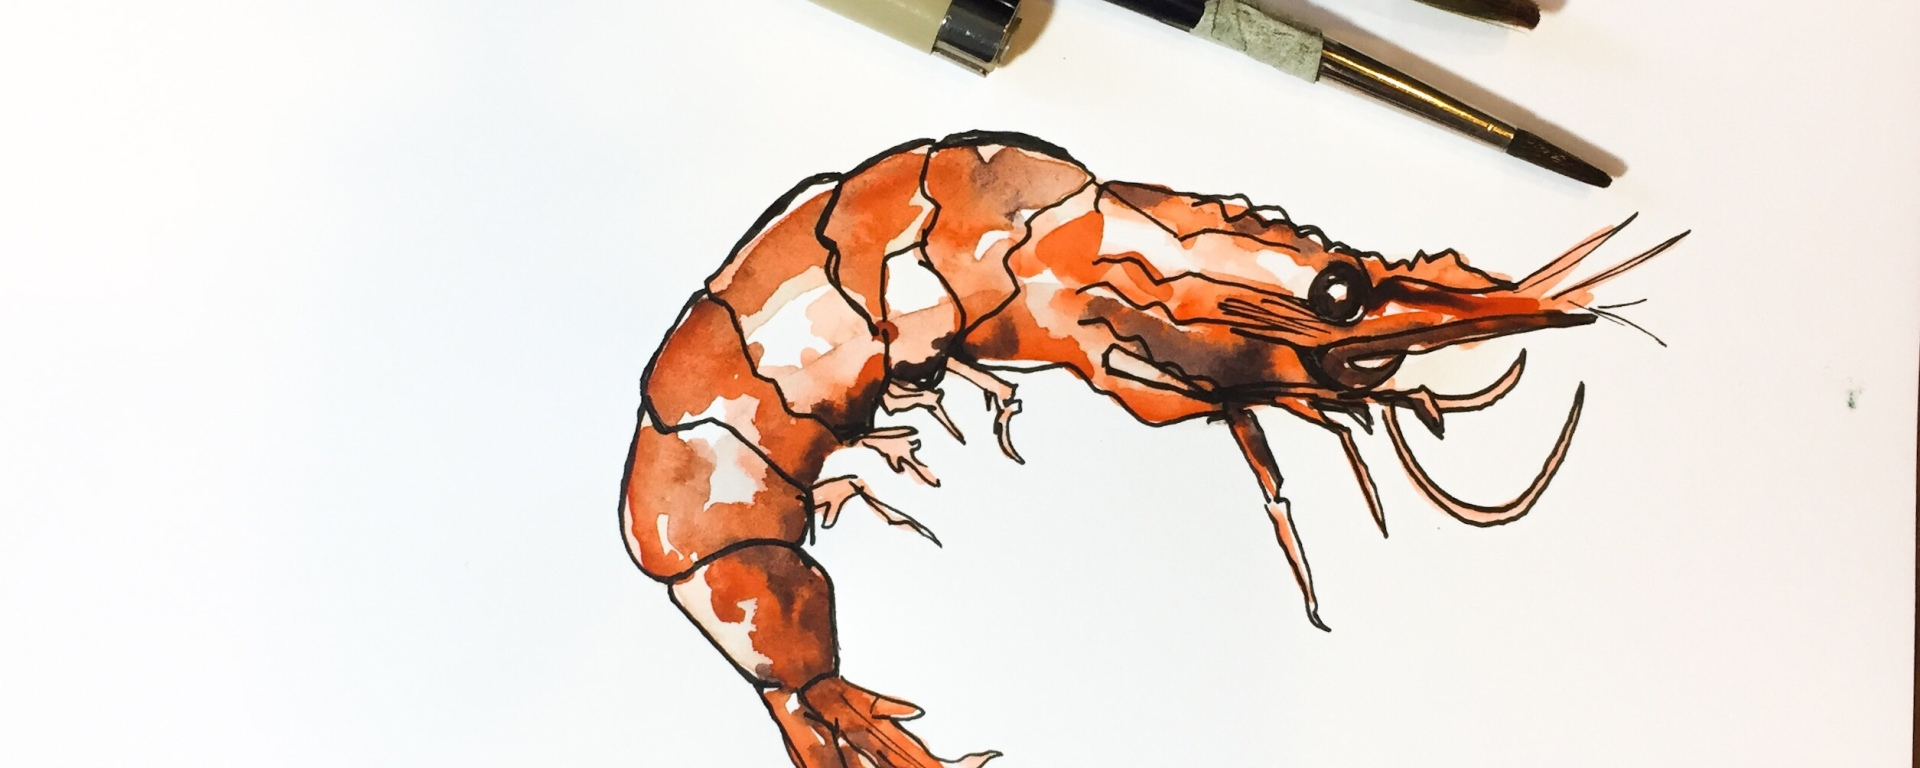 Learn how to a vibrant shrimp using simple layers of colors with this watercolor time lapse tutorial!